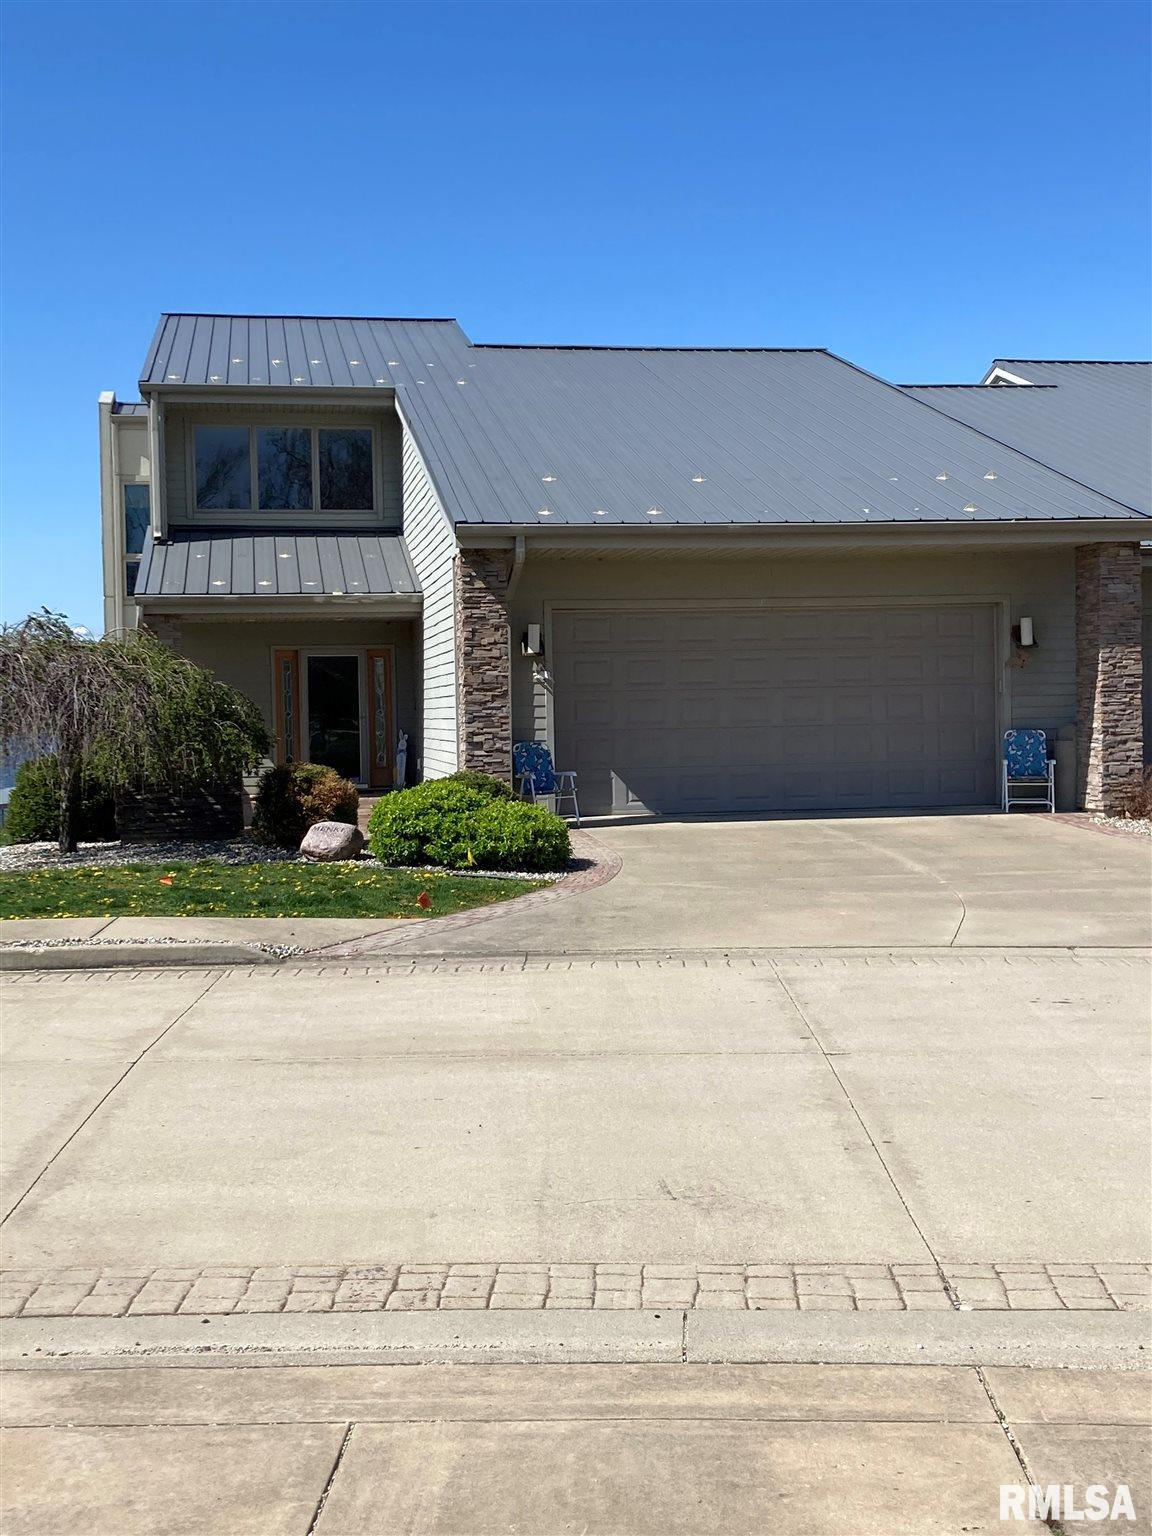 313 Harbor Point Property Photo - Springfield, IL real estate listing